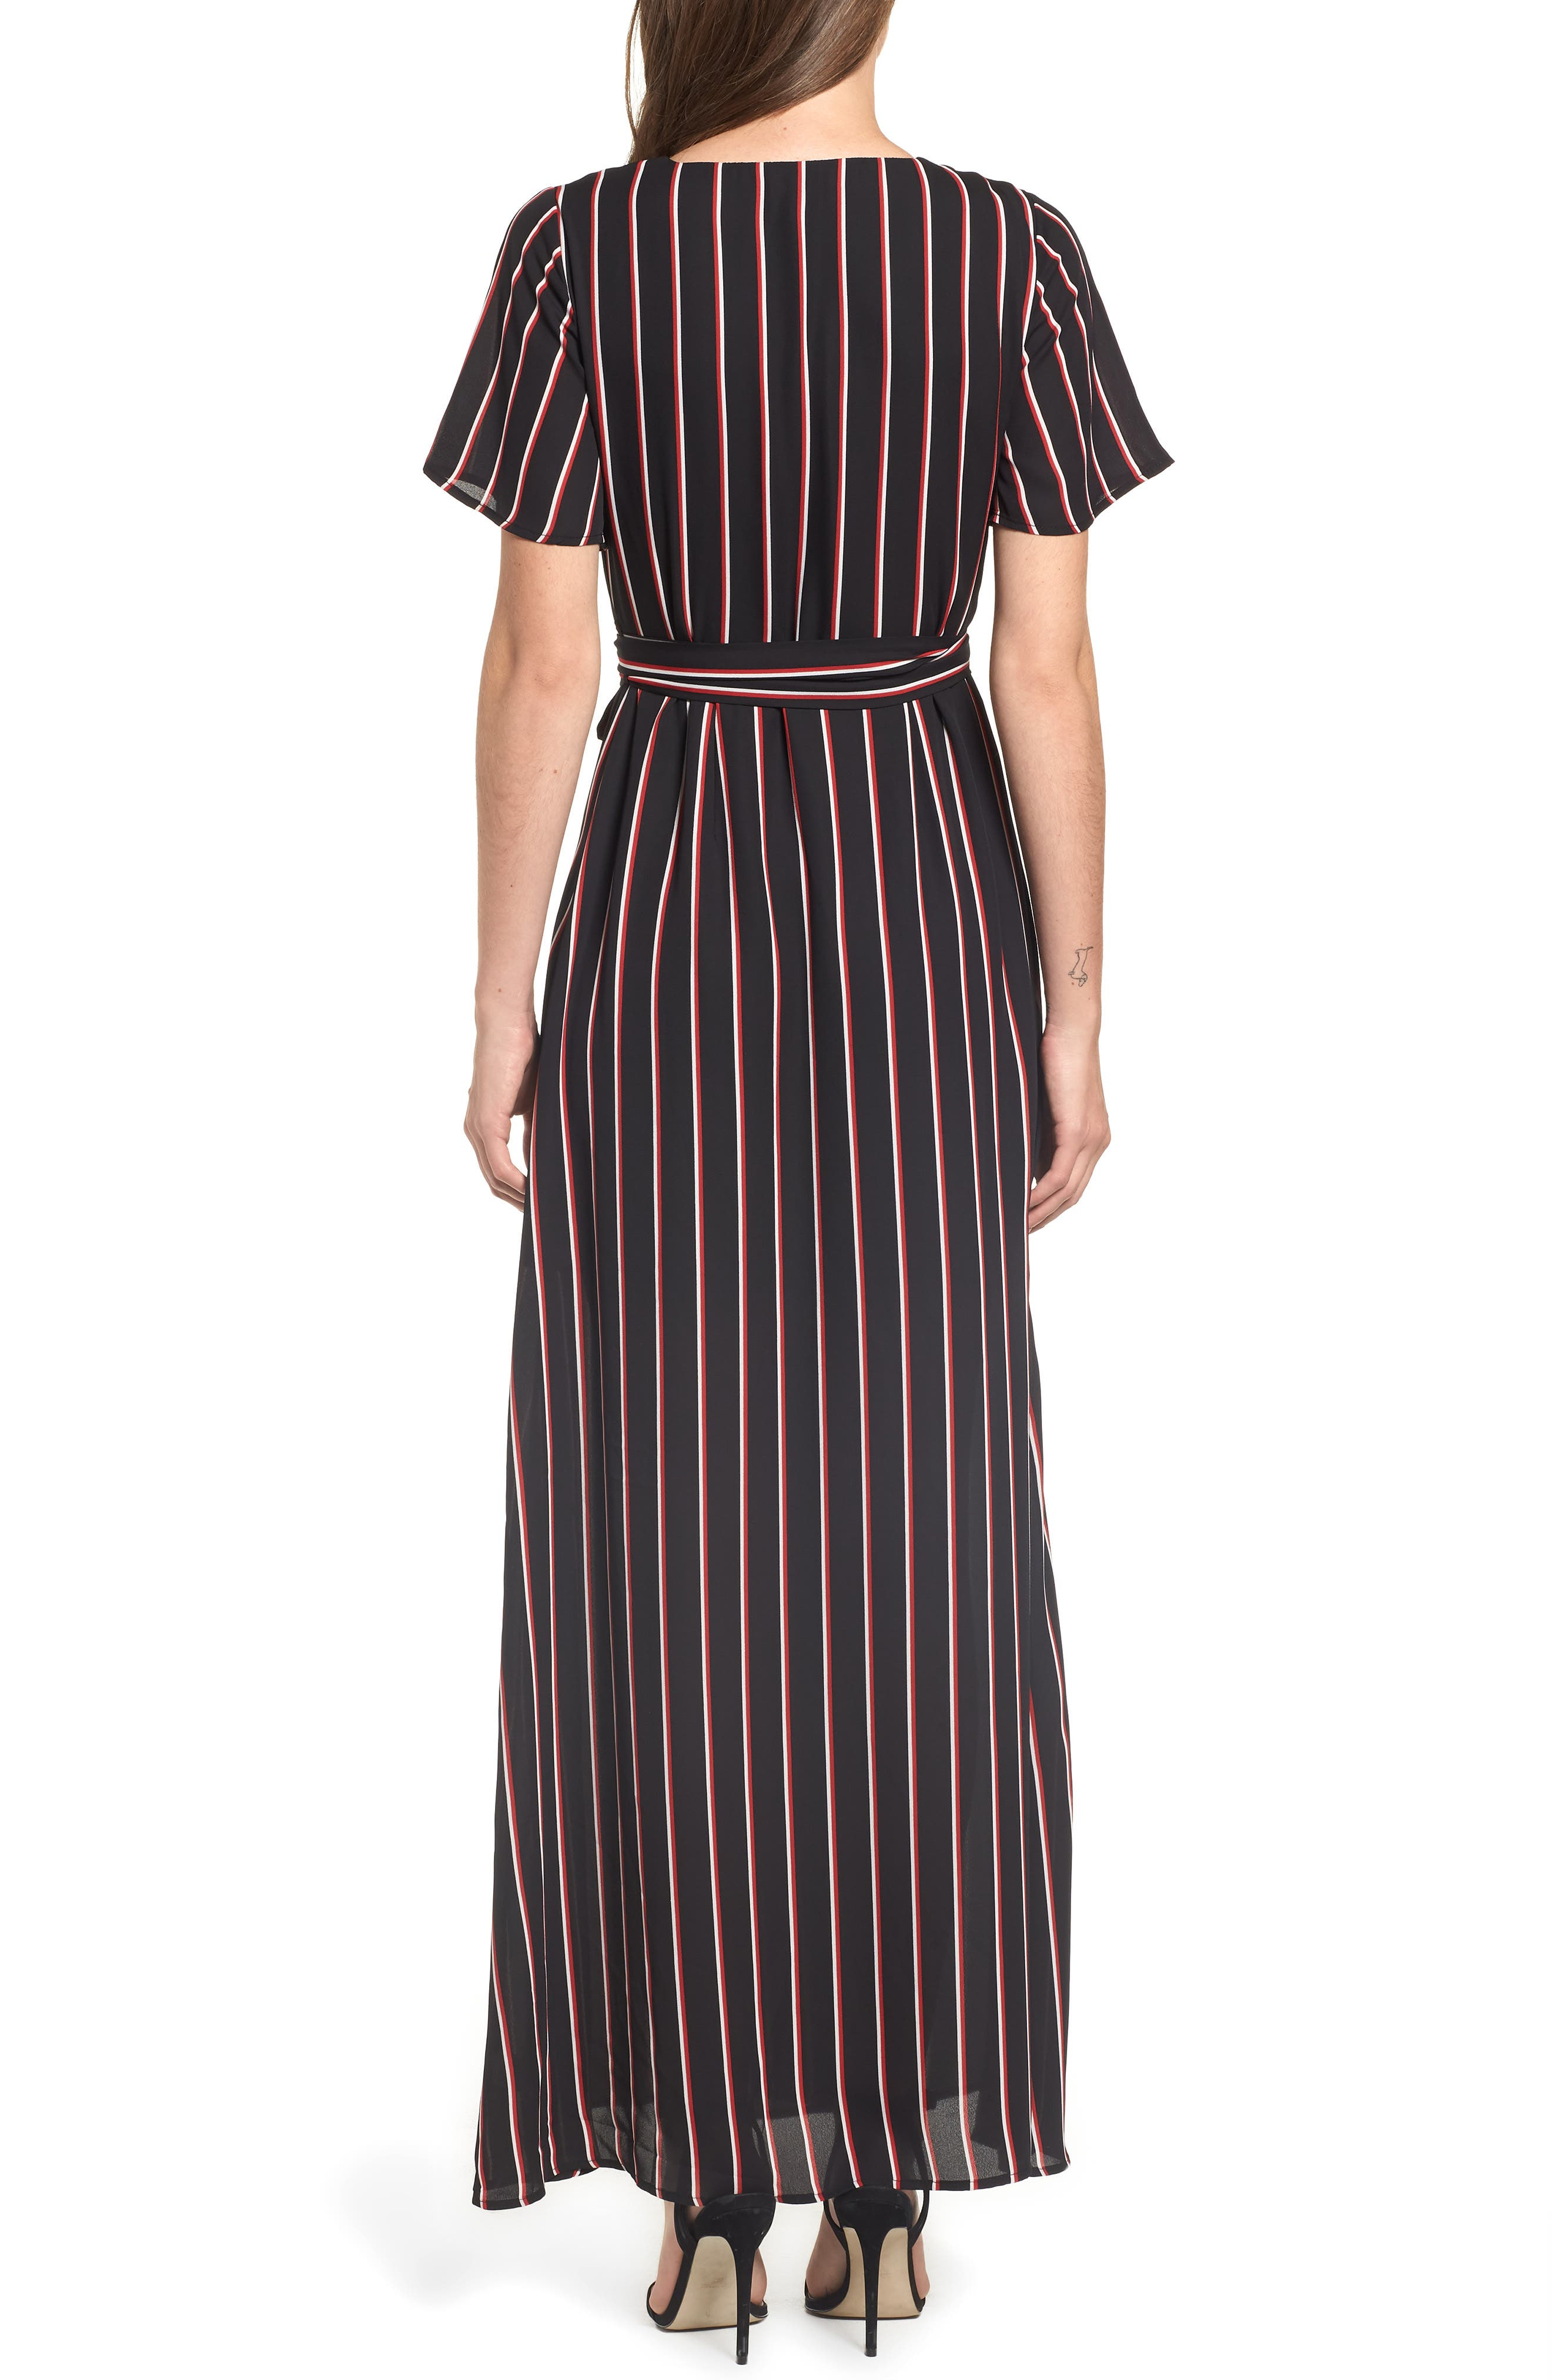 Wrap Maxi Dress,                             Alternate thumbnail 2, color,                             BLACK DOUBLE STRIPE